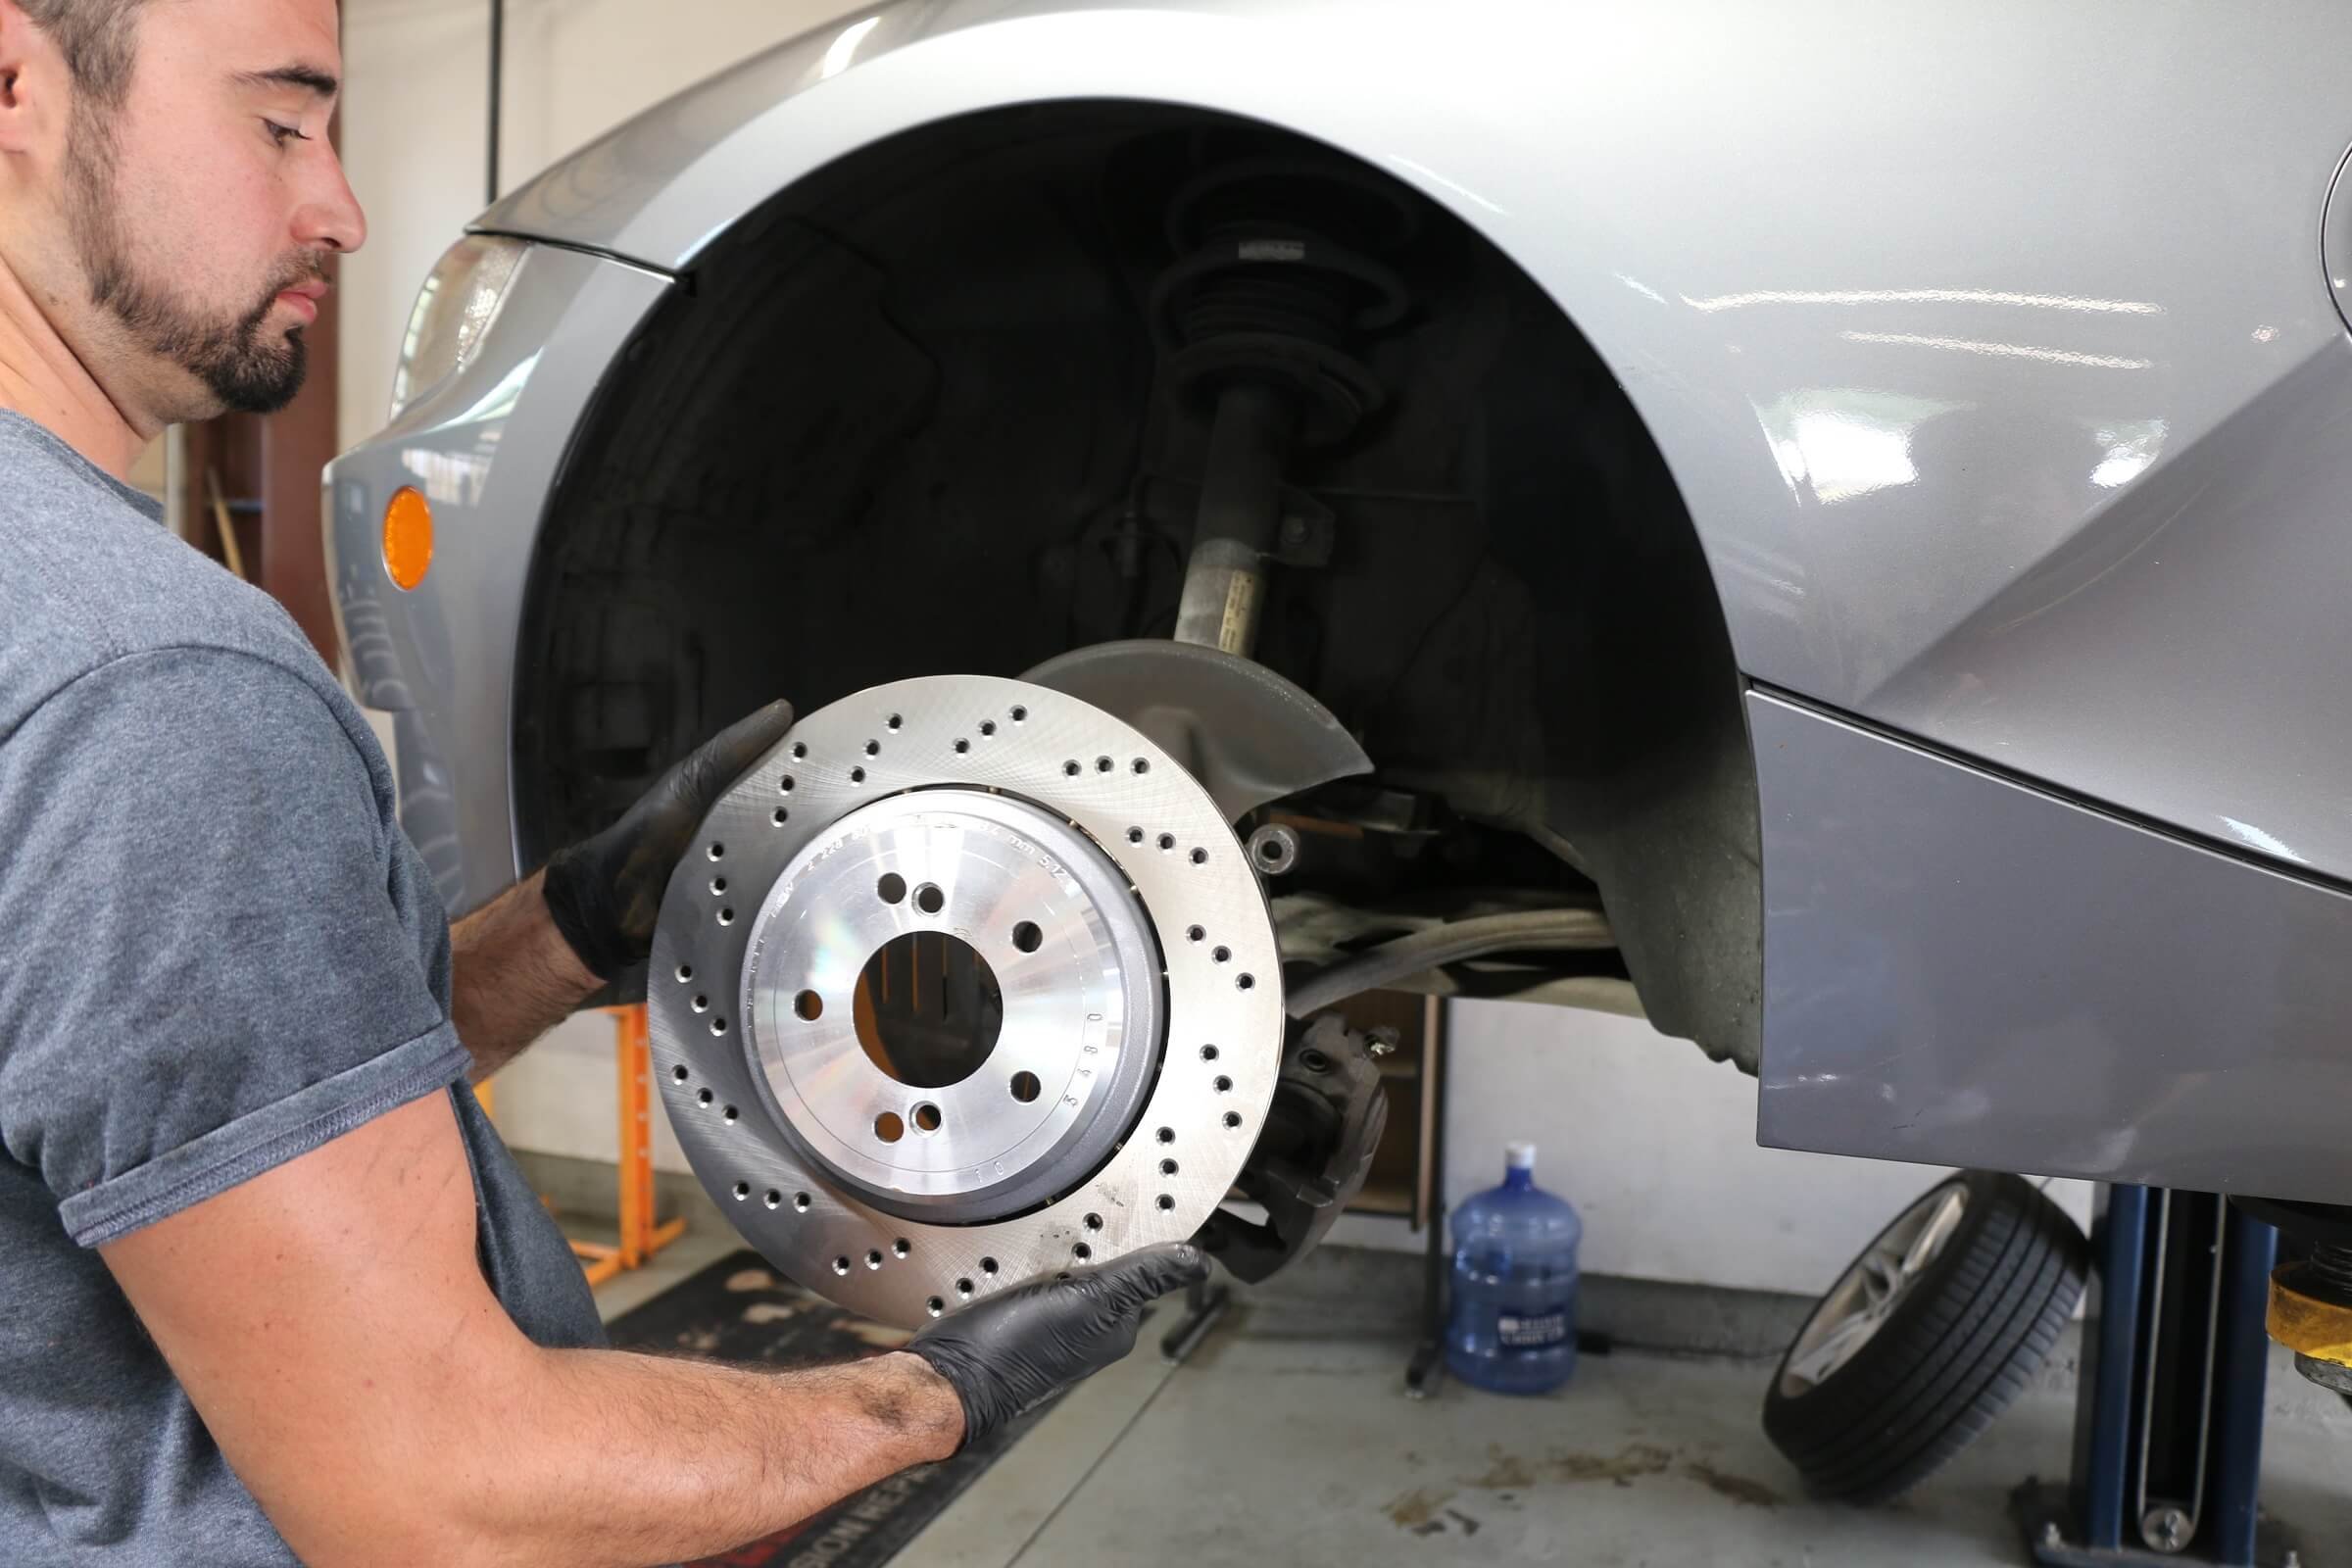 Audi Brake Repair Service in Plano Texas